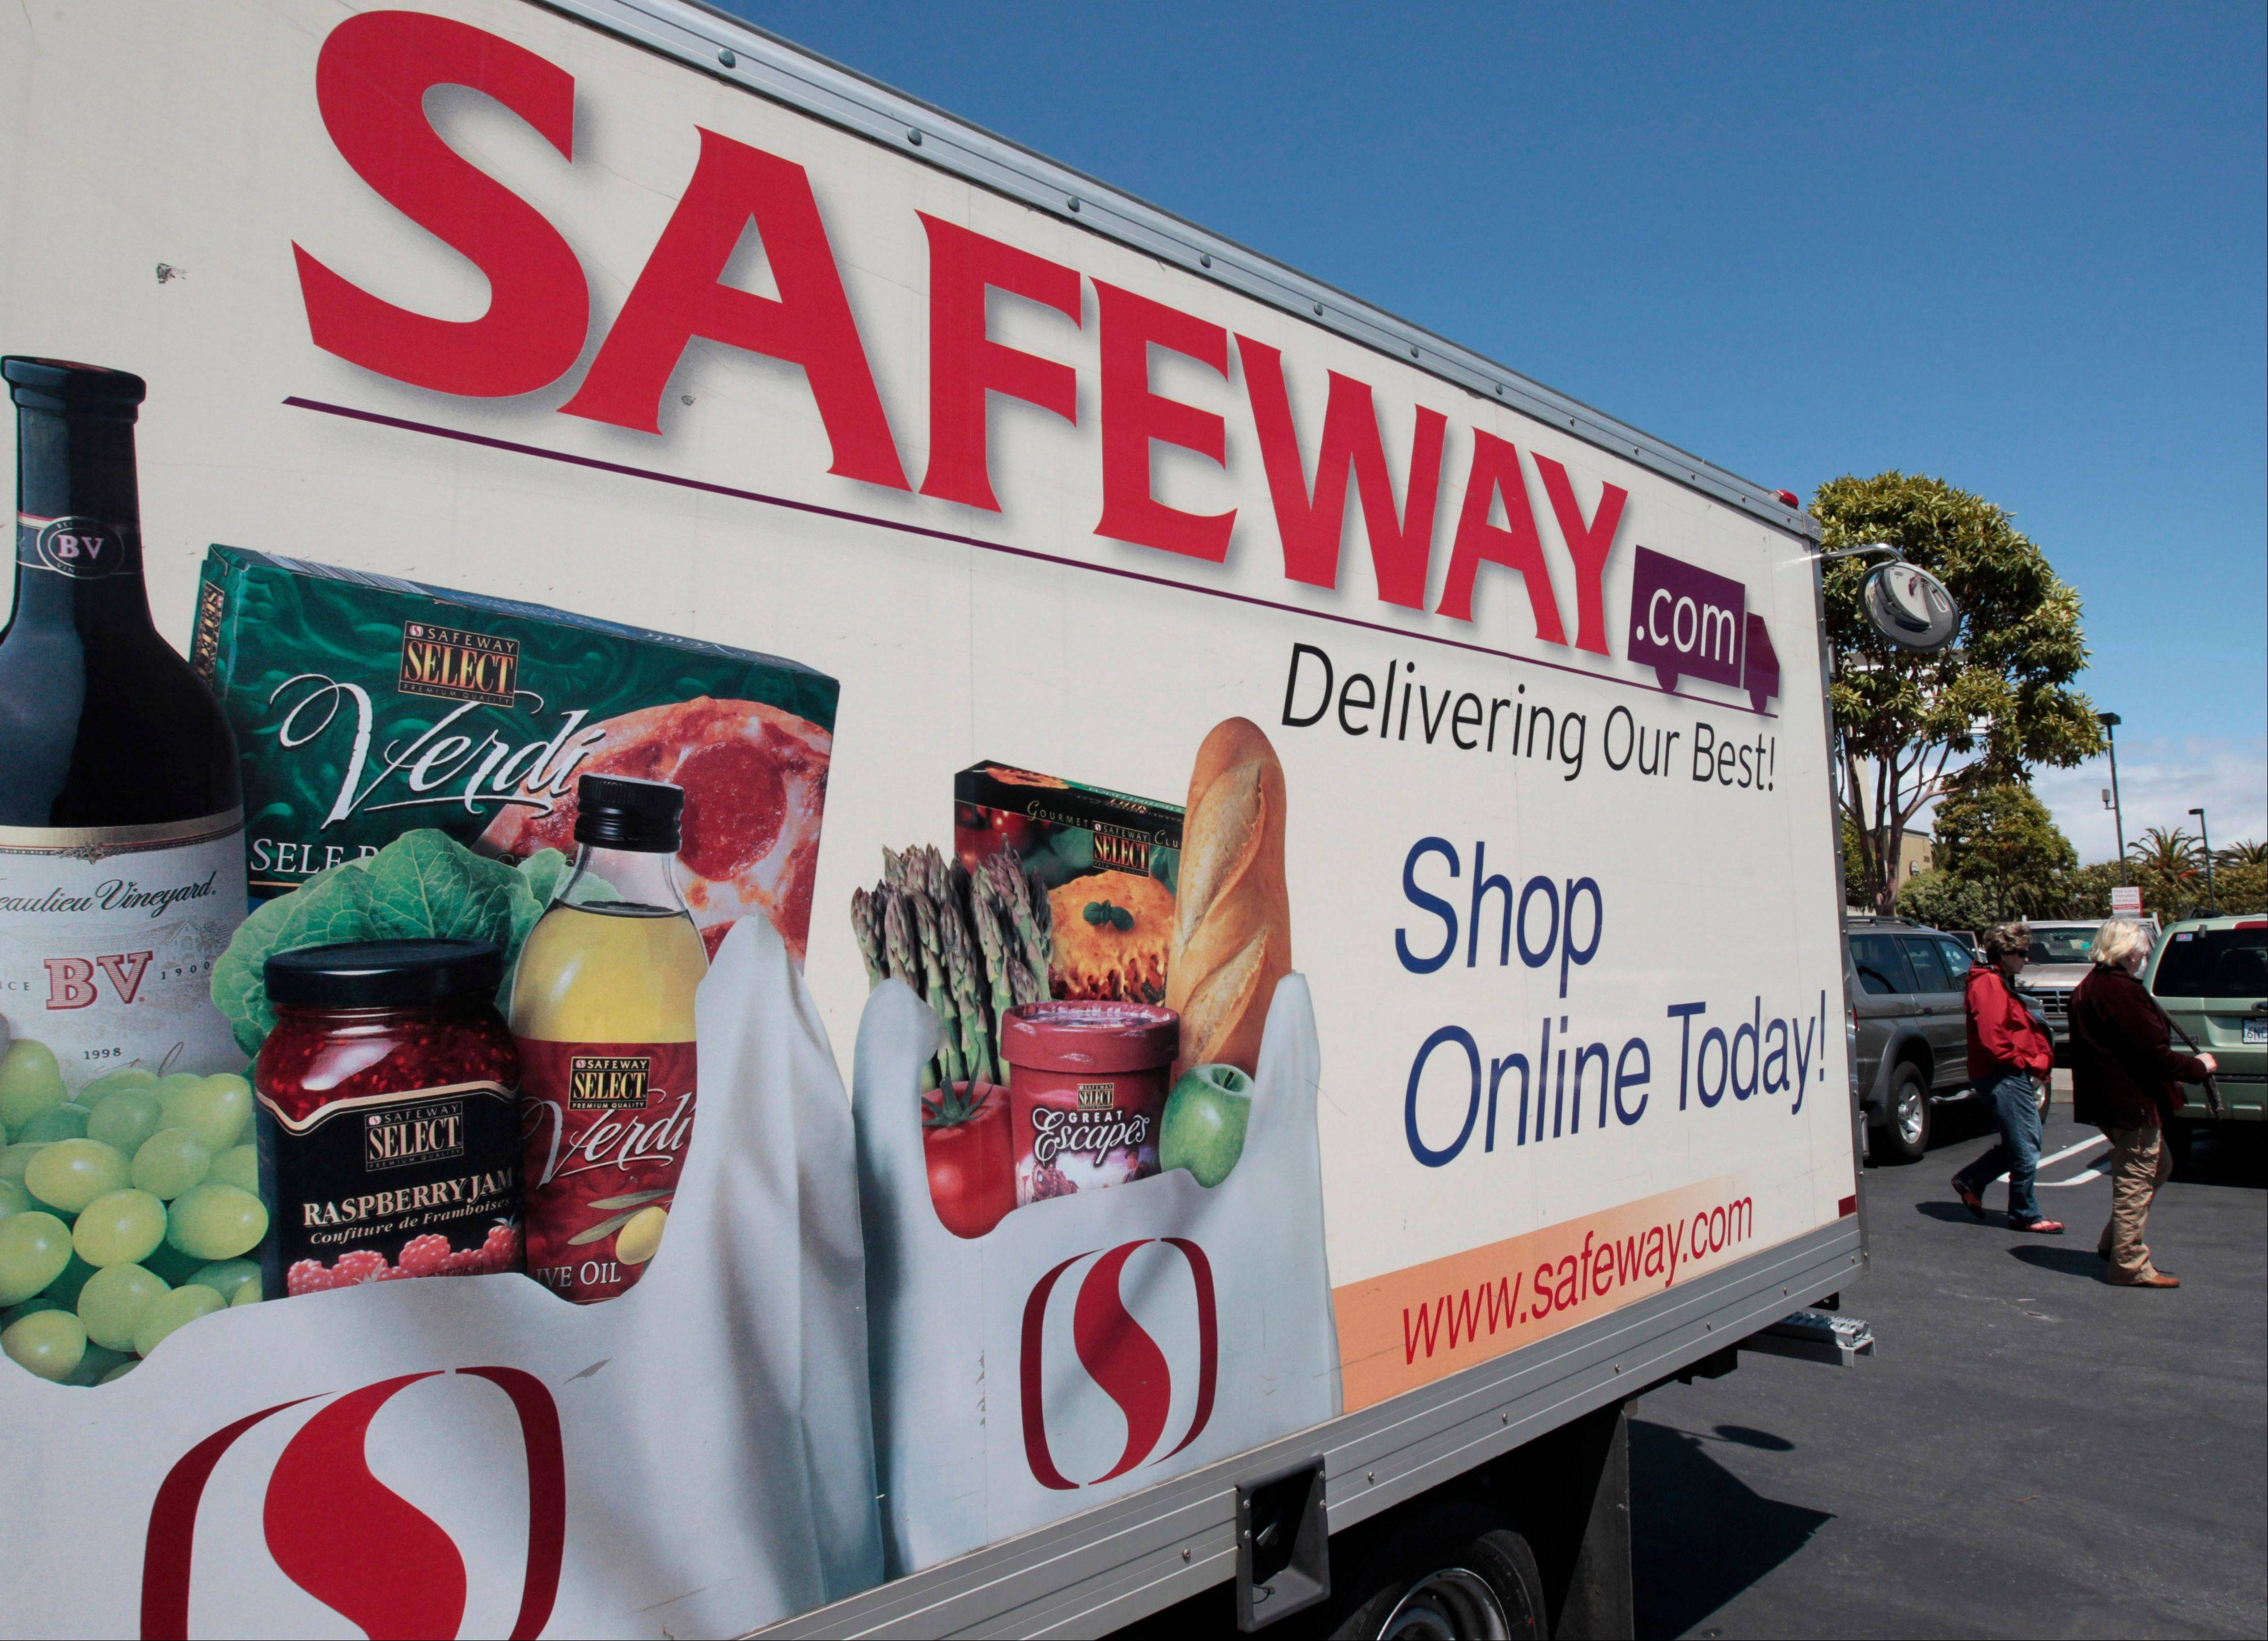 A Safeway online shopping advertisement at a Safeway store in San Francisco.